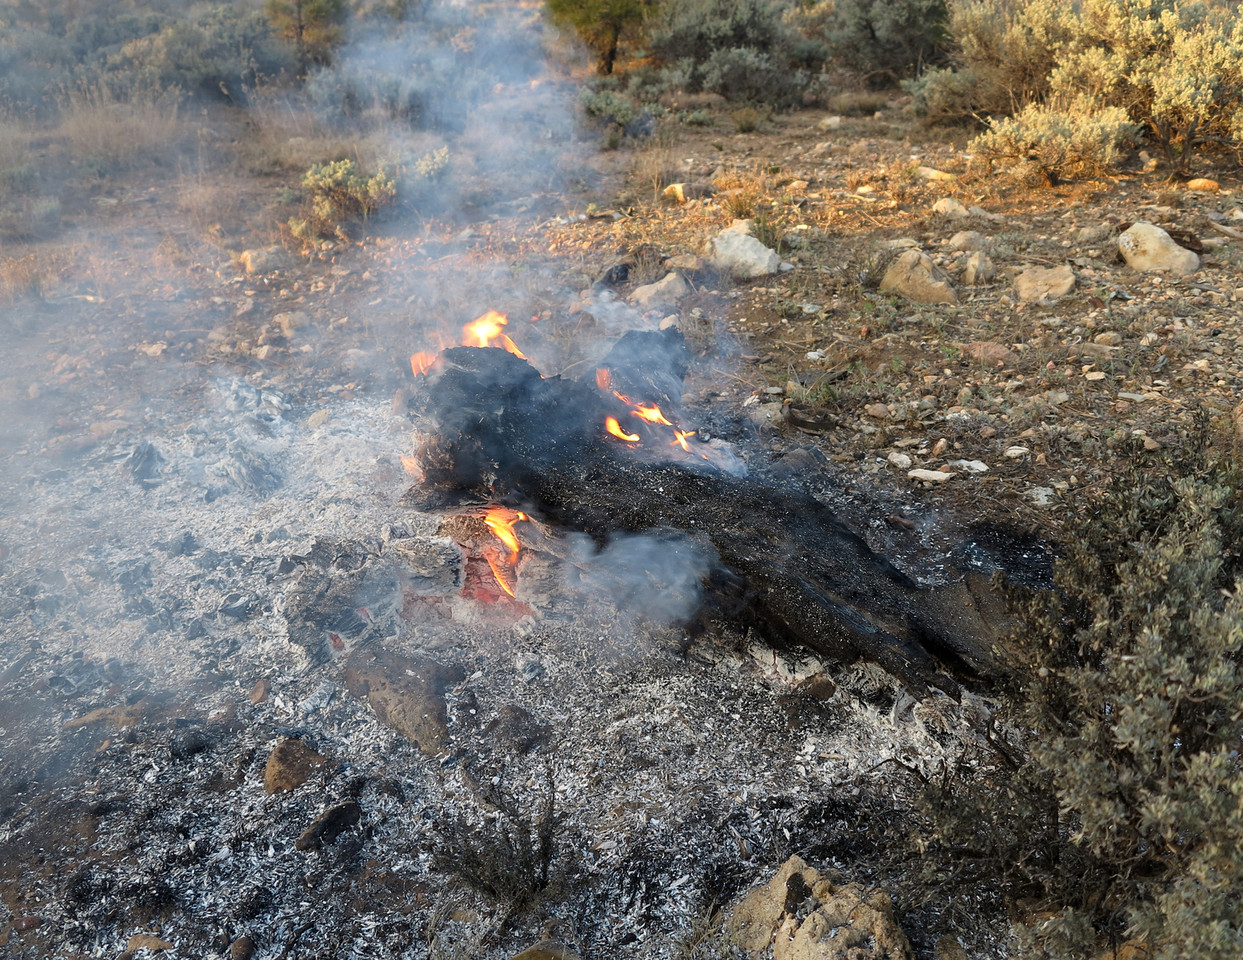 UPDATE: NOVEMBER 2013<br /> <br /> A prescribed burn (Flying J) took place during November 2013. The area of the crash site was apparently not marked as a historical site by Forest Service officials and some features of the site were destroyed. One such feature that was lost was the tree stump featured in the above photos that contained the embedded metal fragment.